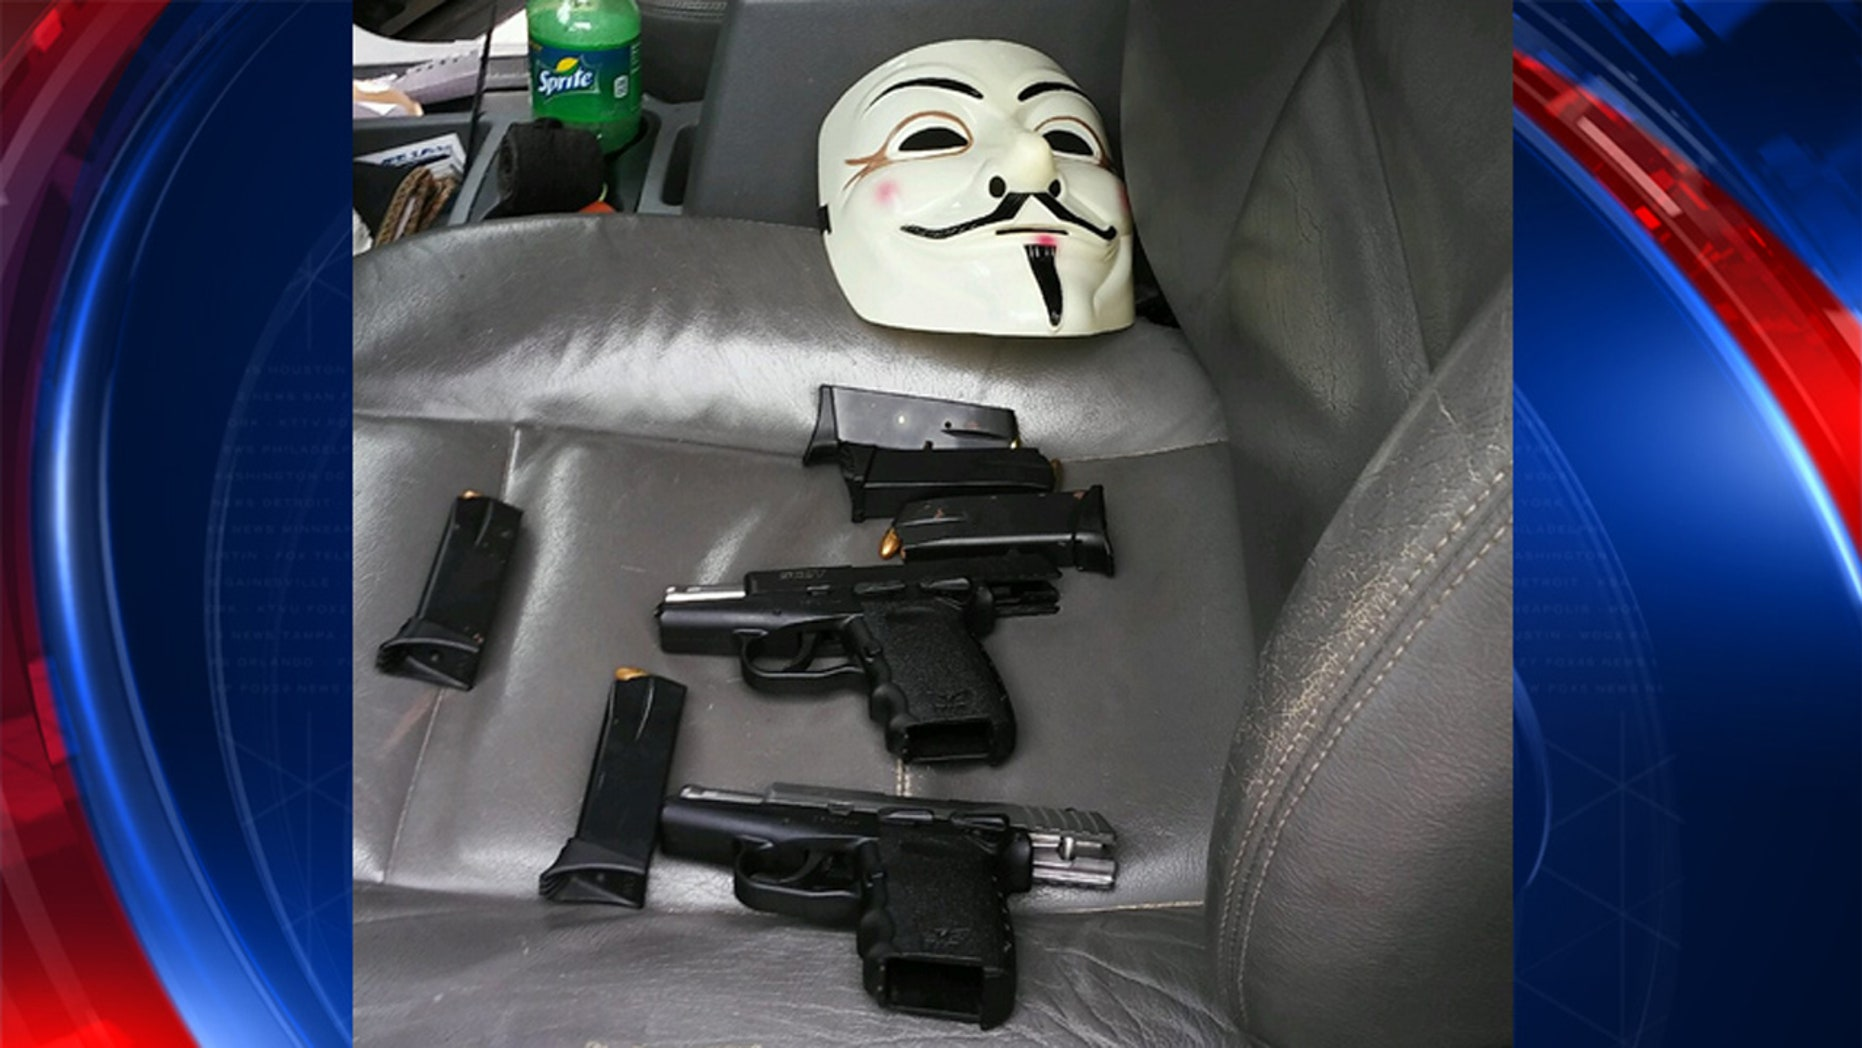 A man was arrested after showing up to Dallas PD Southwest patrol with a mask, guns and drugs in his vehicle and threatening to shoot.